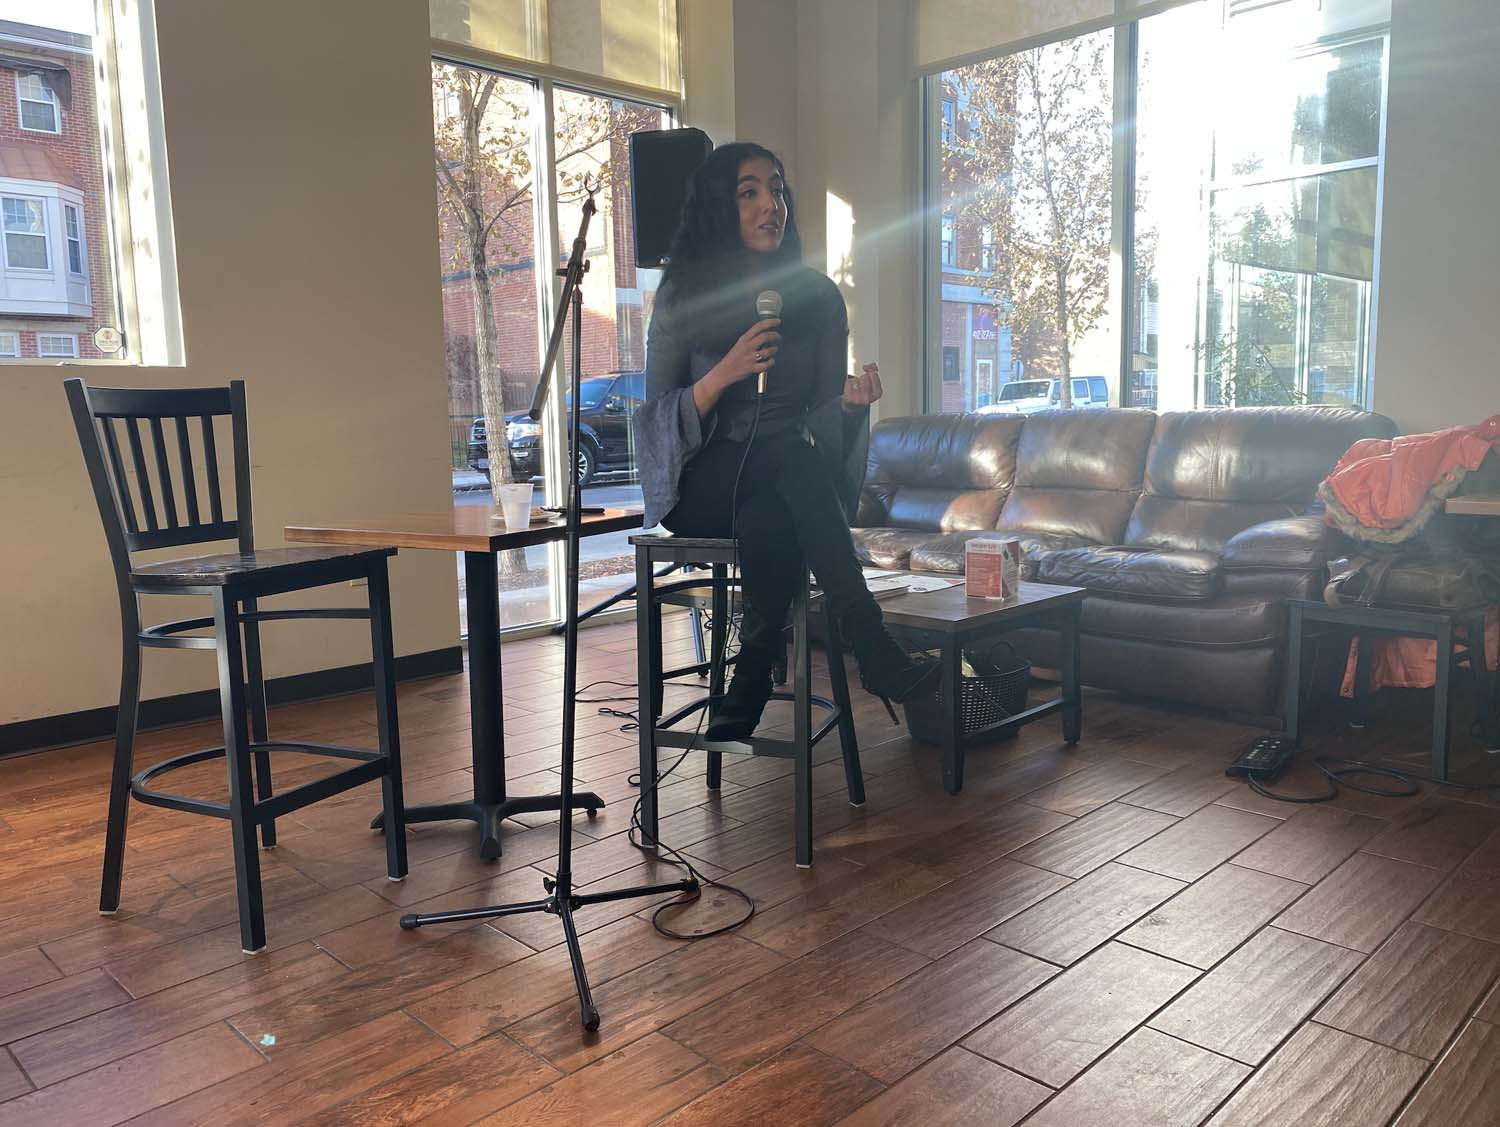 Gisele Fetterman, the second lady of Pennsylvania, speaks about clothing insecurity at Homewood's Everyday Cafe on Thursday evening.